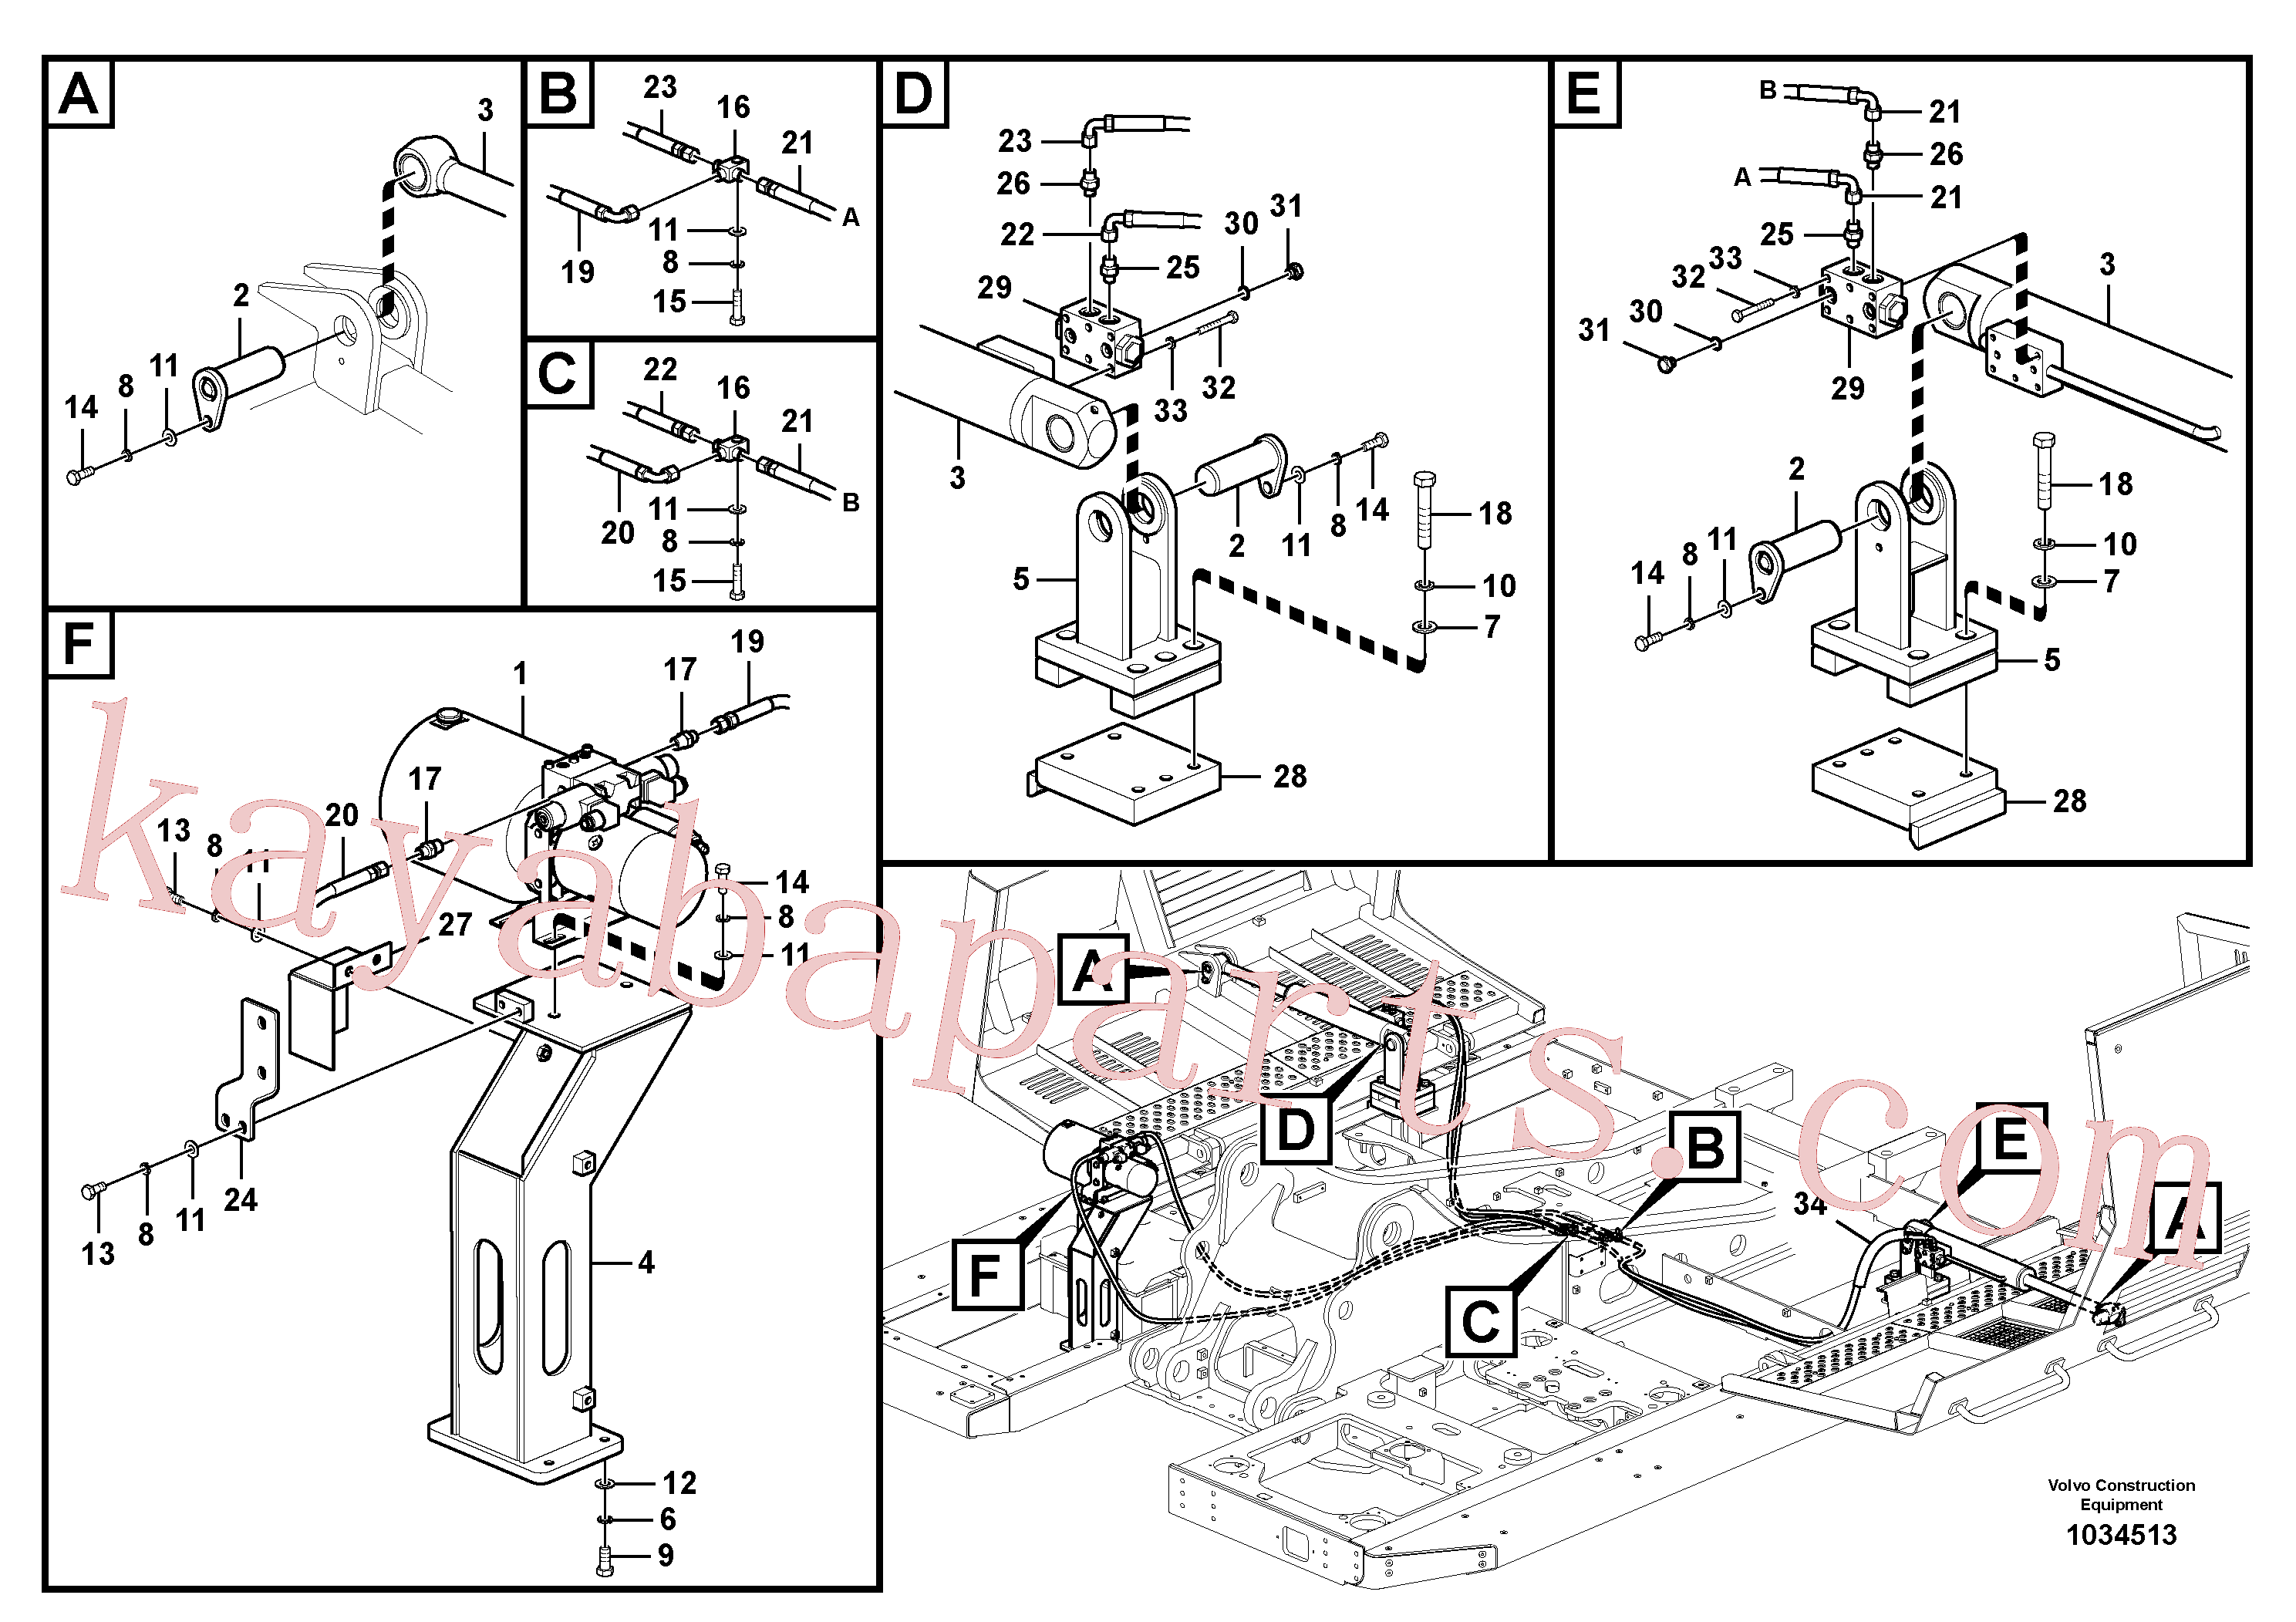 VOE14546616 for Volvo Working hydraulics, Gullwing tilting device(1034513 assembly)